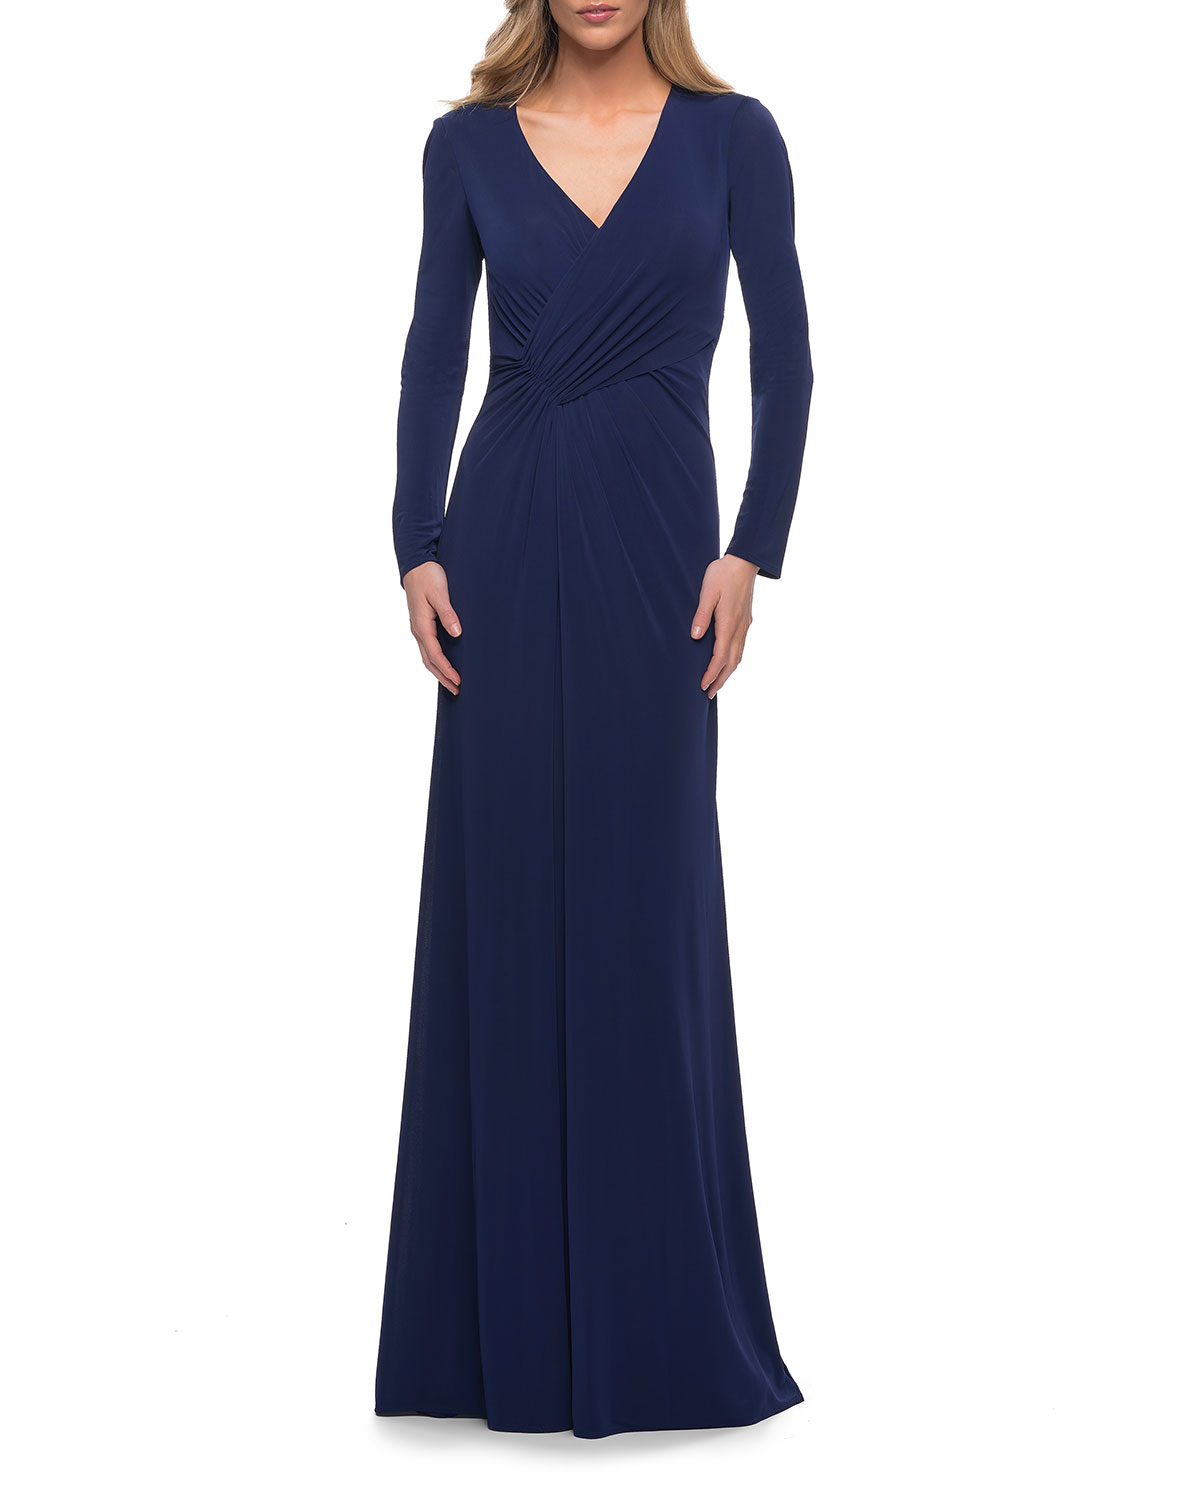 La Femme Gowns LONG-SLEEVE RUCHED JERSEY EVENING GOWN